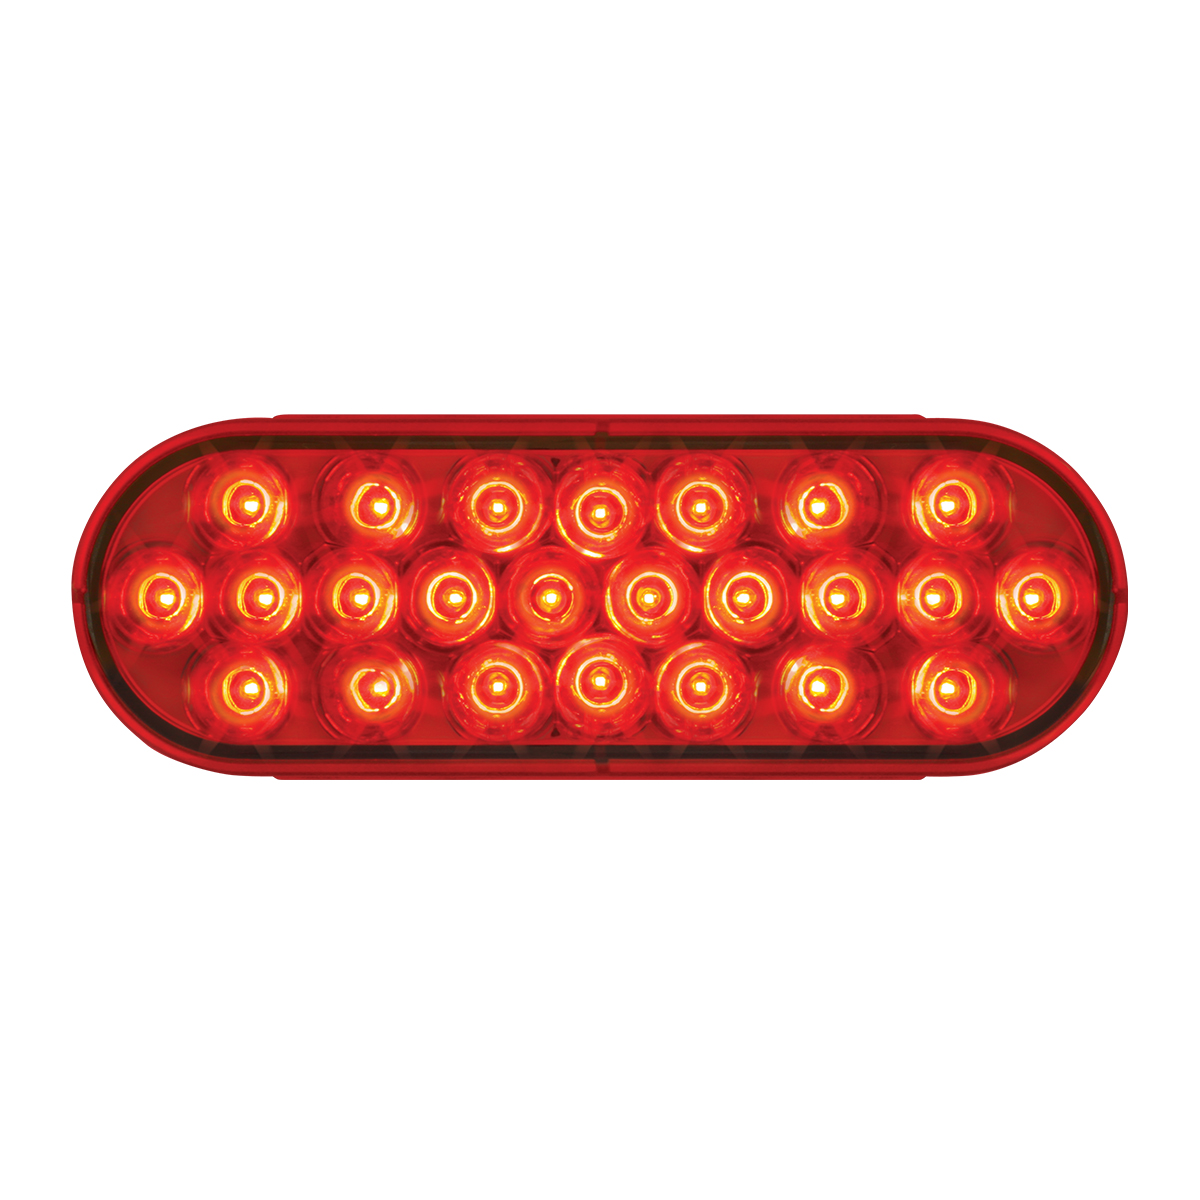 #78233 - Oval Pearl LED Flat Red/Red Light - Slanted